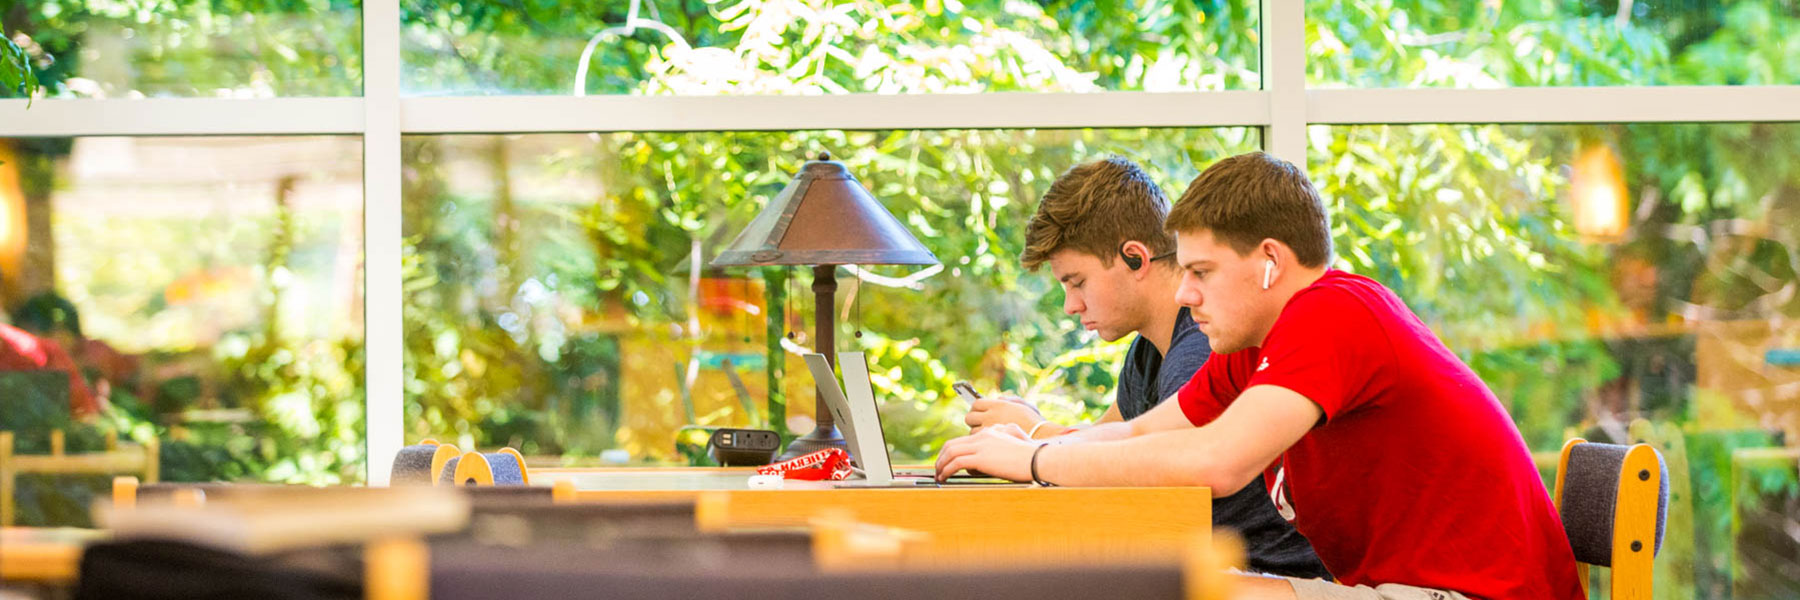 two male students seated at a desk look at their laptops while studying in memorial library